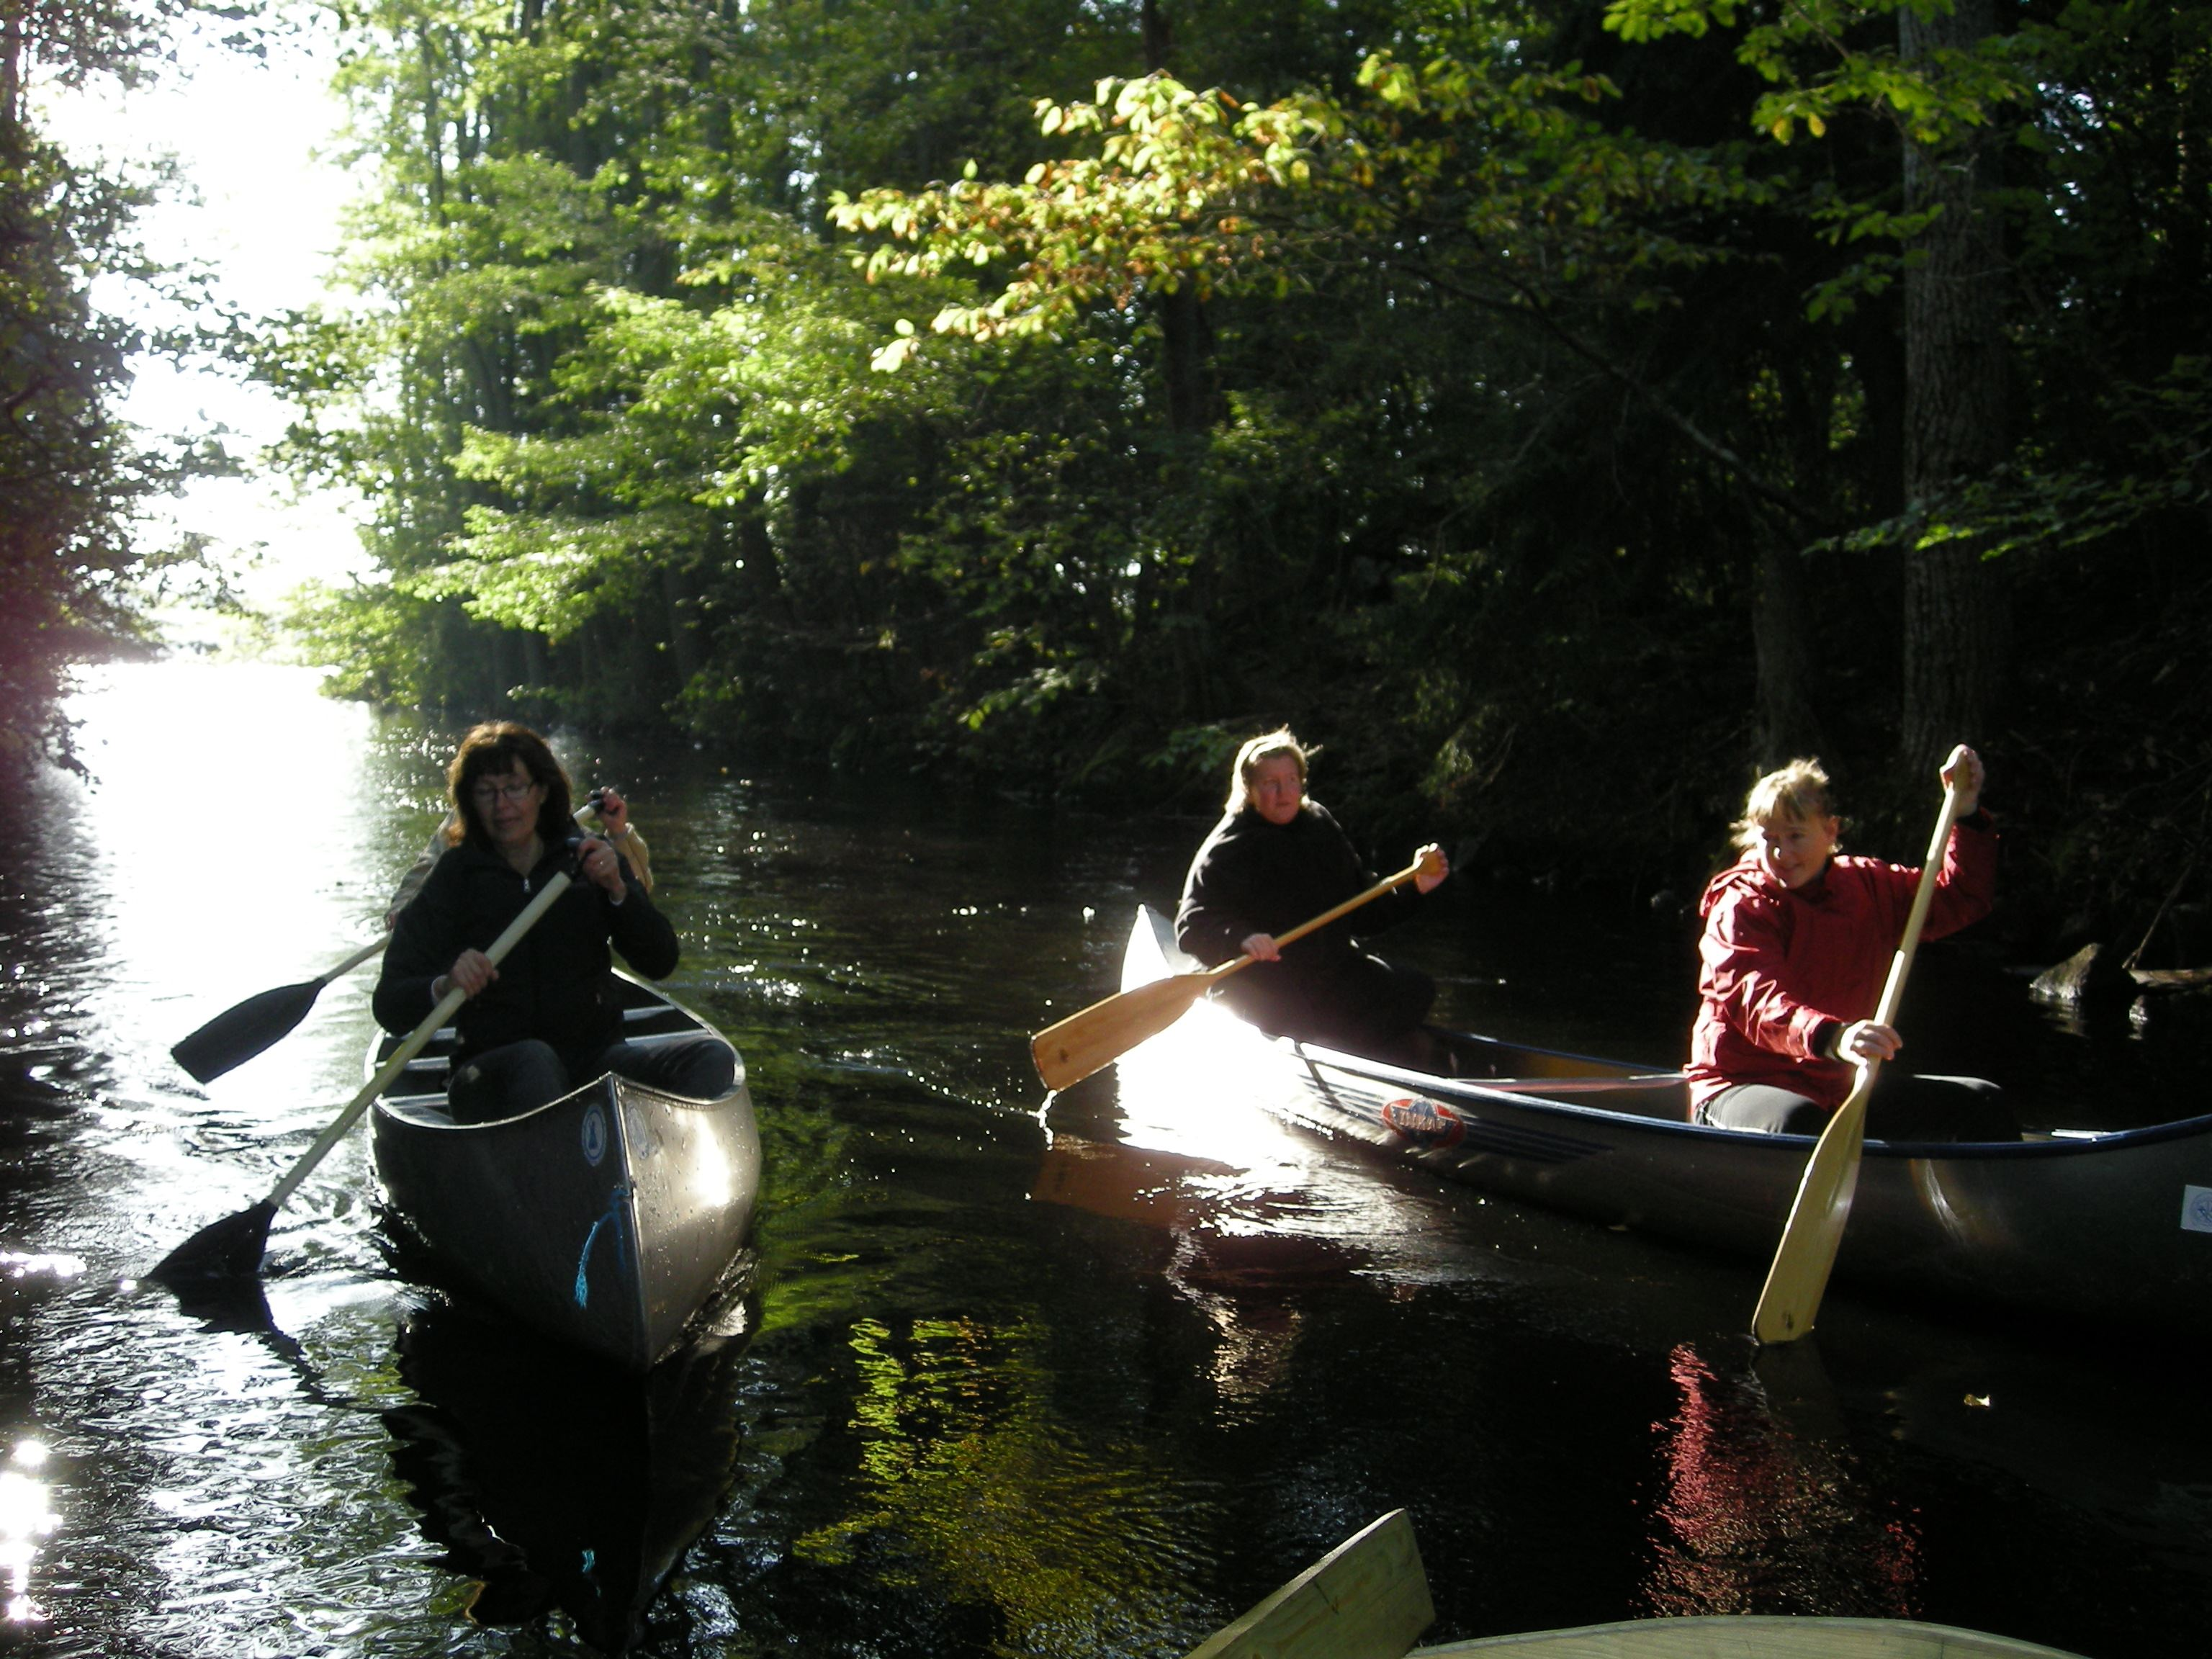 Canoeing in the river Emån and lakes in Högsby